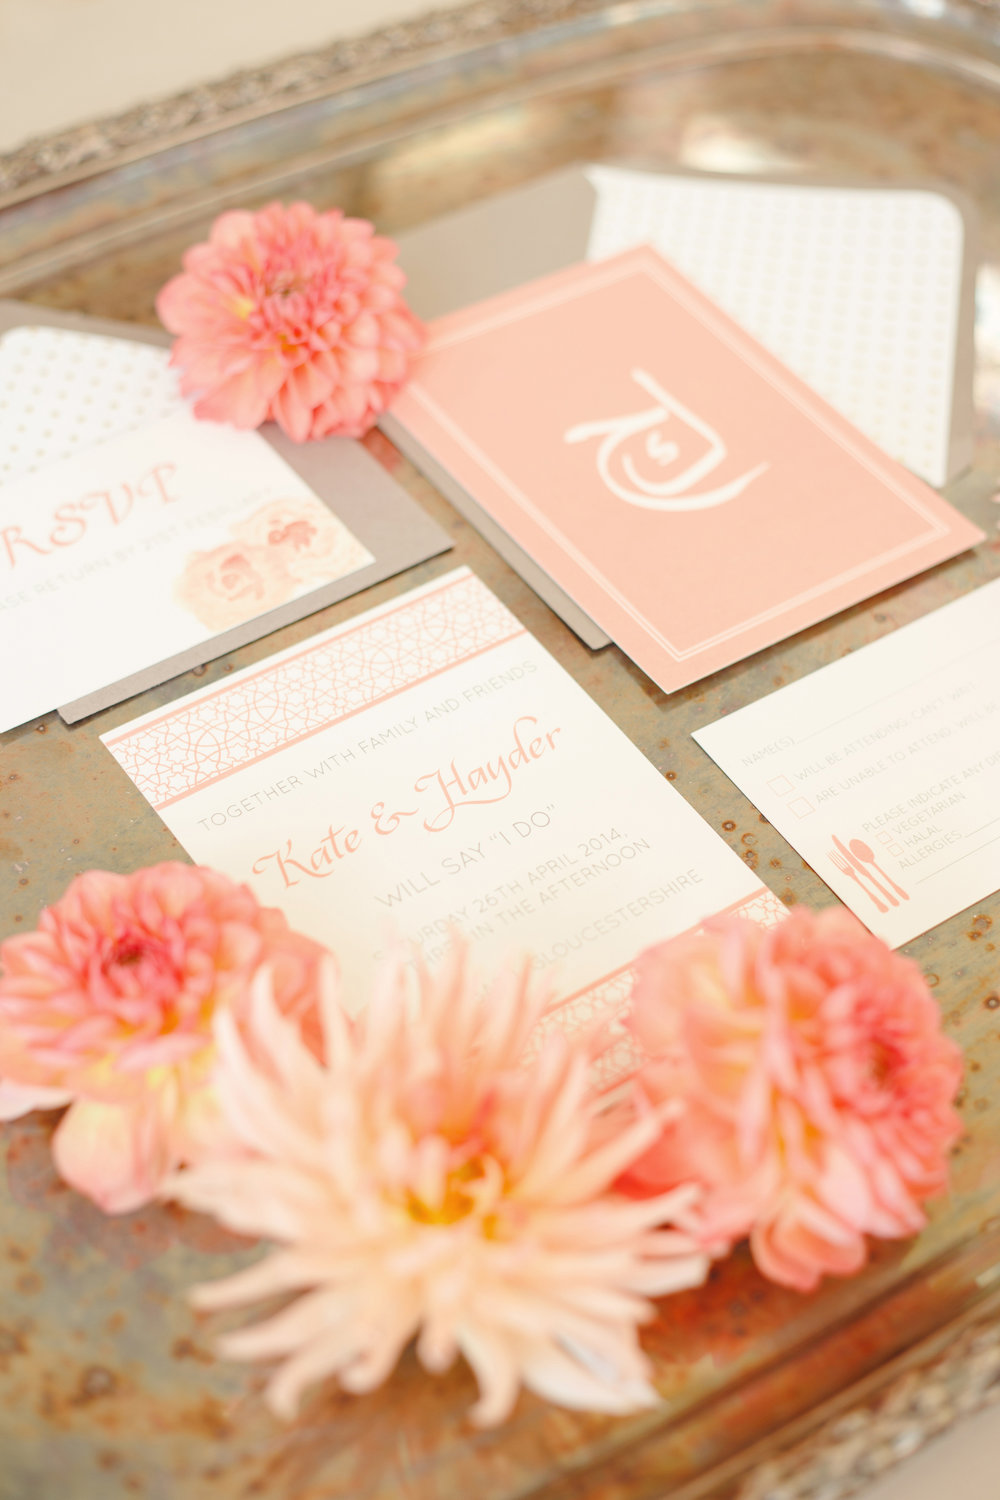 Kate and Hayder's bespoke wedding stationery for their Cripps Barn wedding